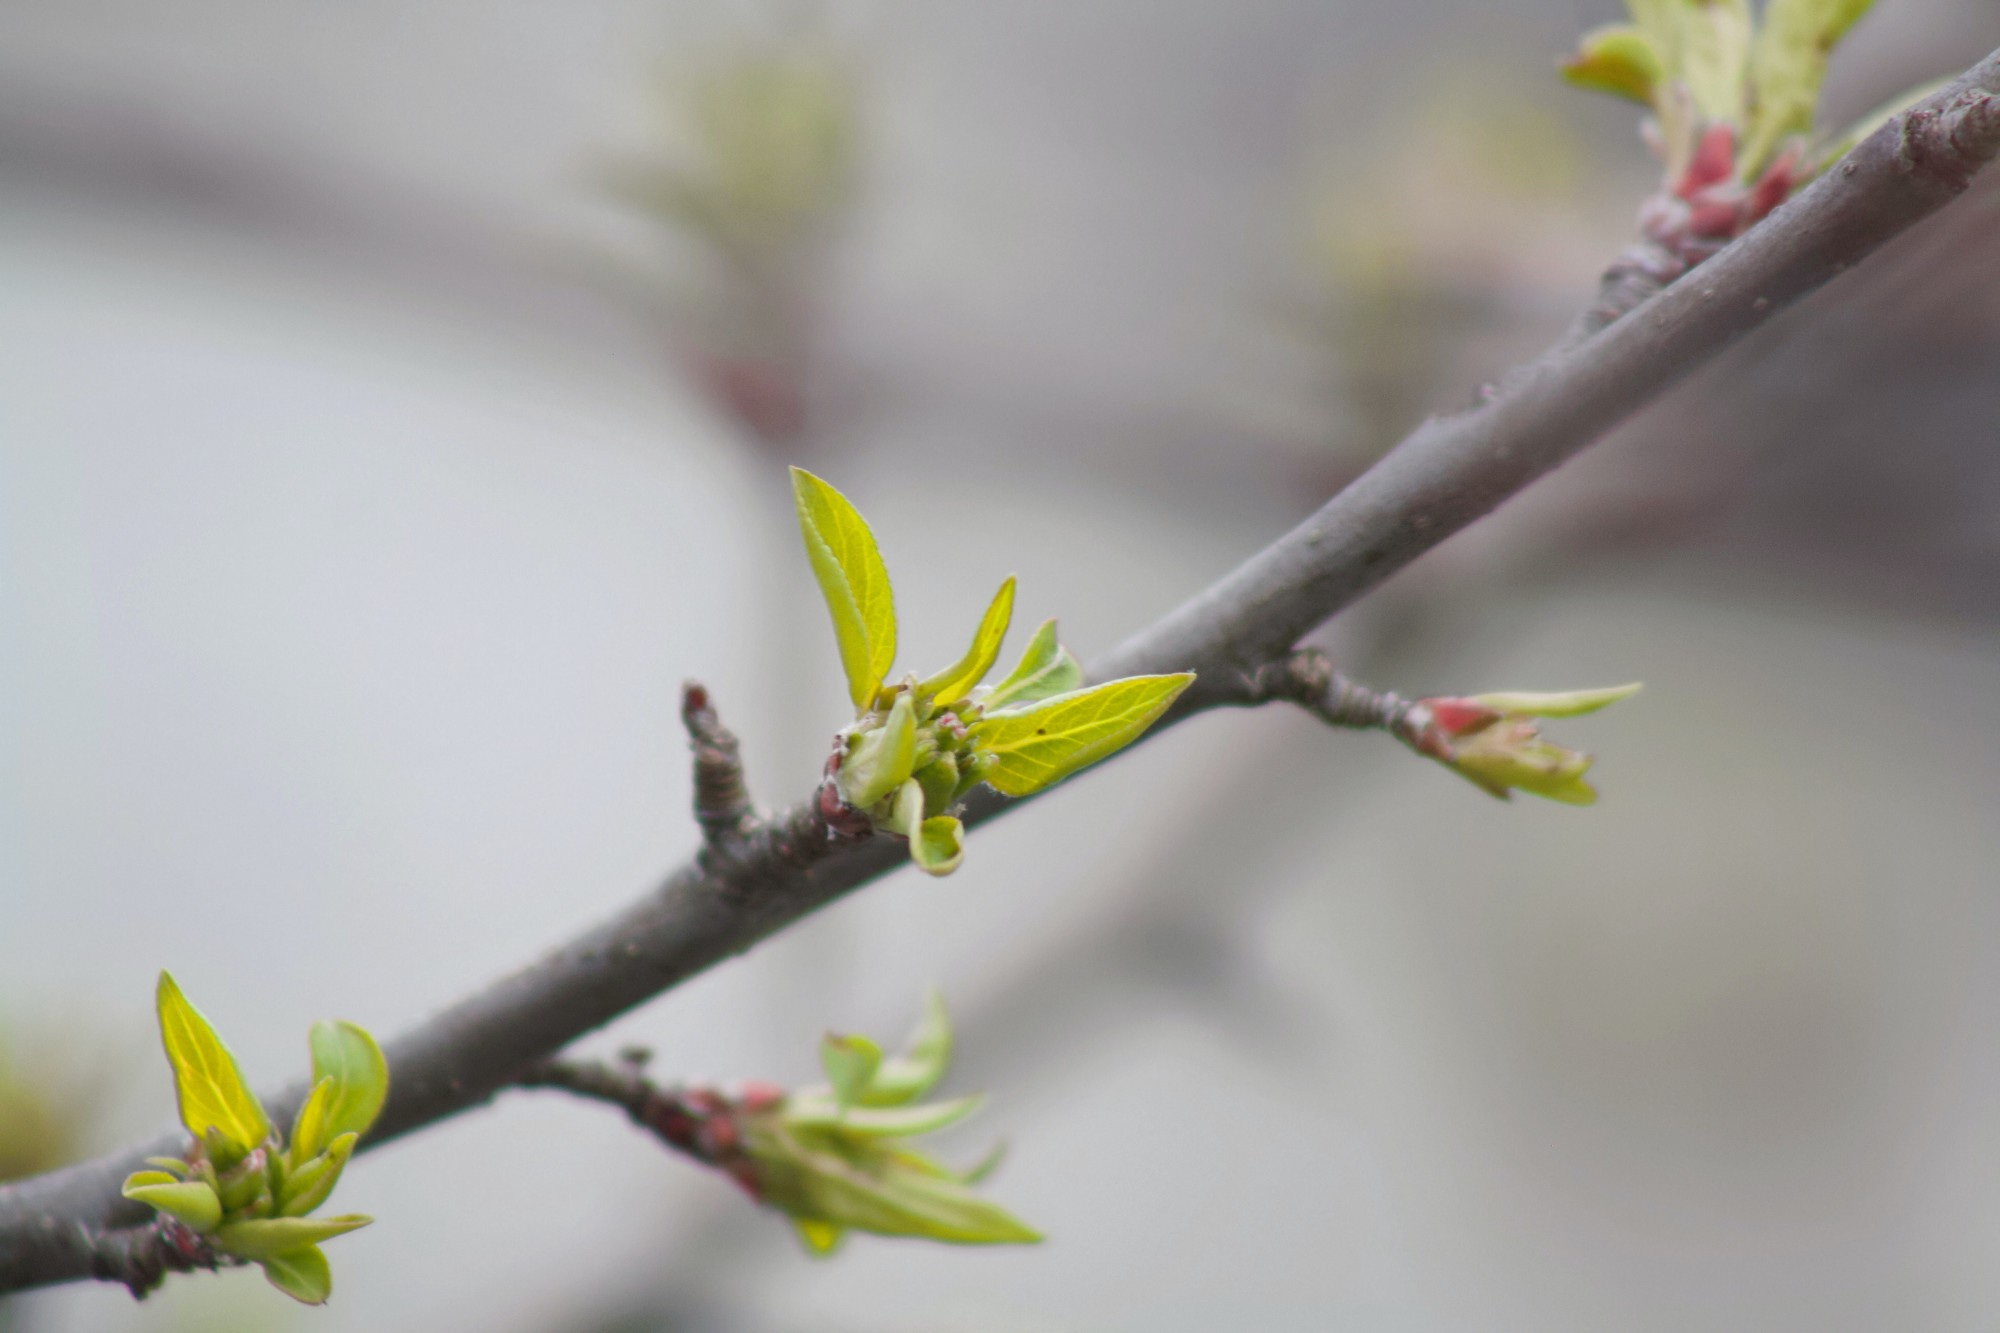 A tree branch shows the first sign of green spring leaves.